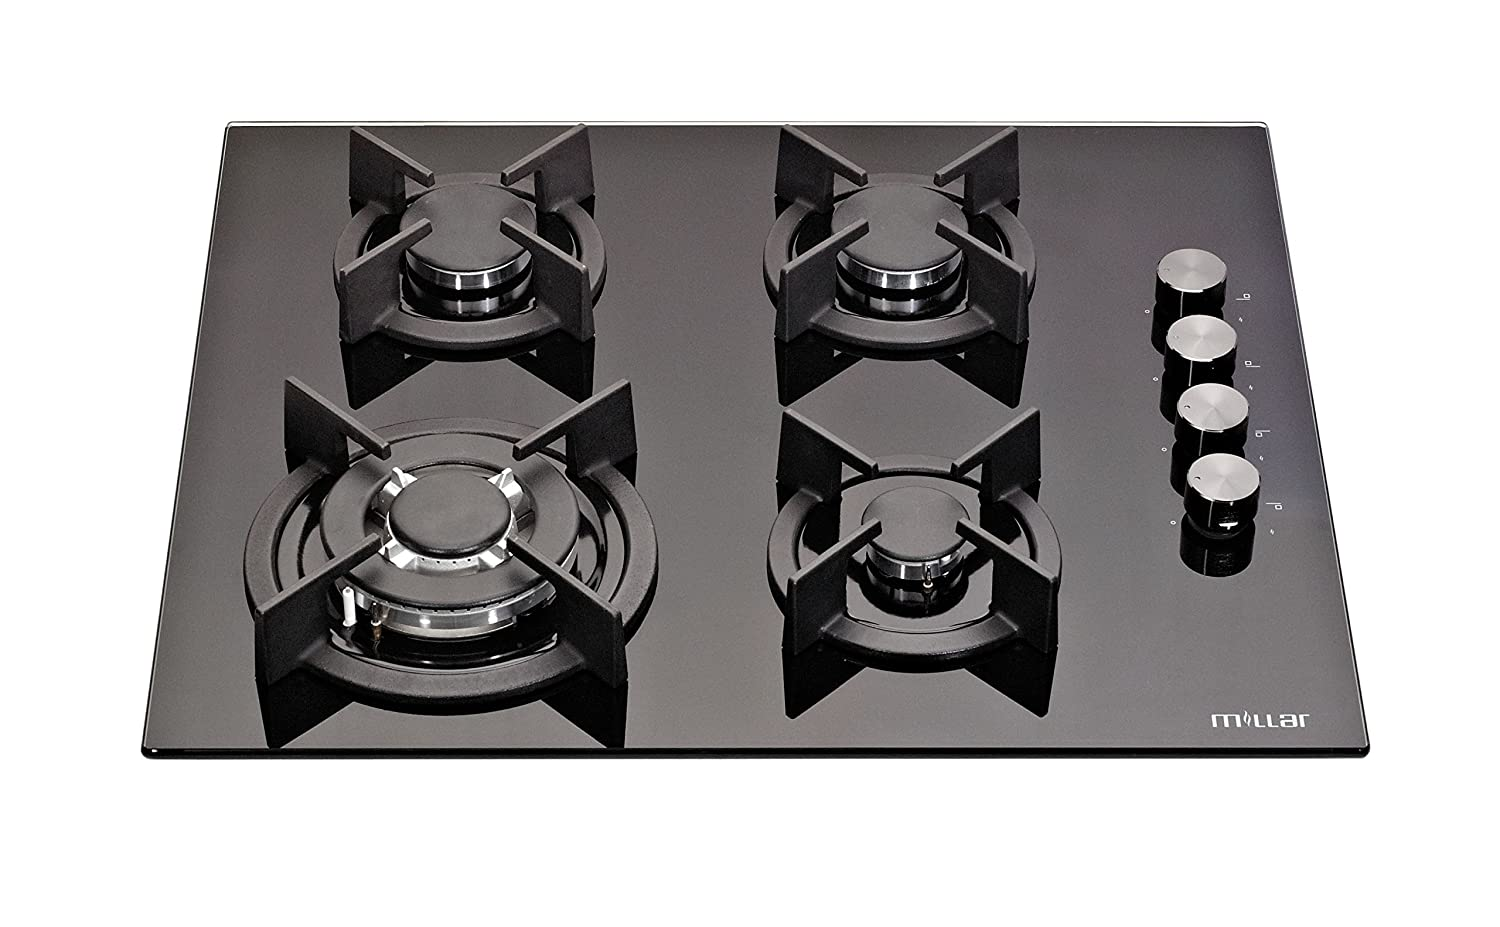 MILLAR GH6041XEB 60cm Built-in 4 Burner Black Gas on Glass Hob/Cooker / Cooktop with FFD